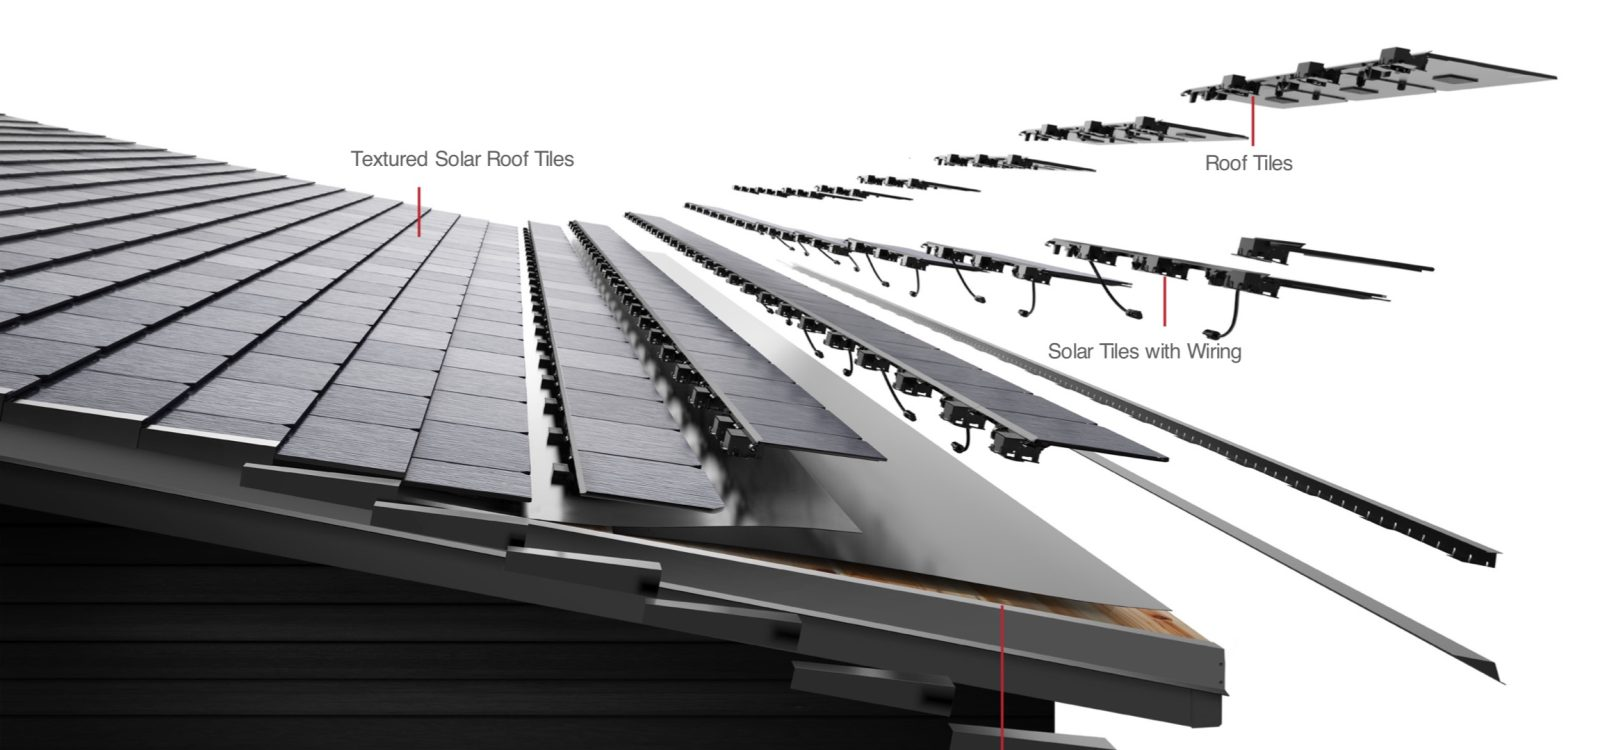 Tesla Solar Roof V3 real quote shows price dropped by 40%